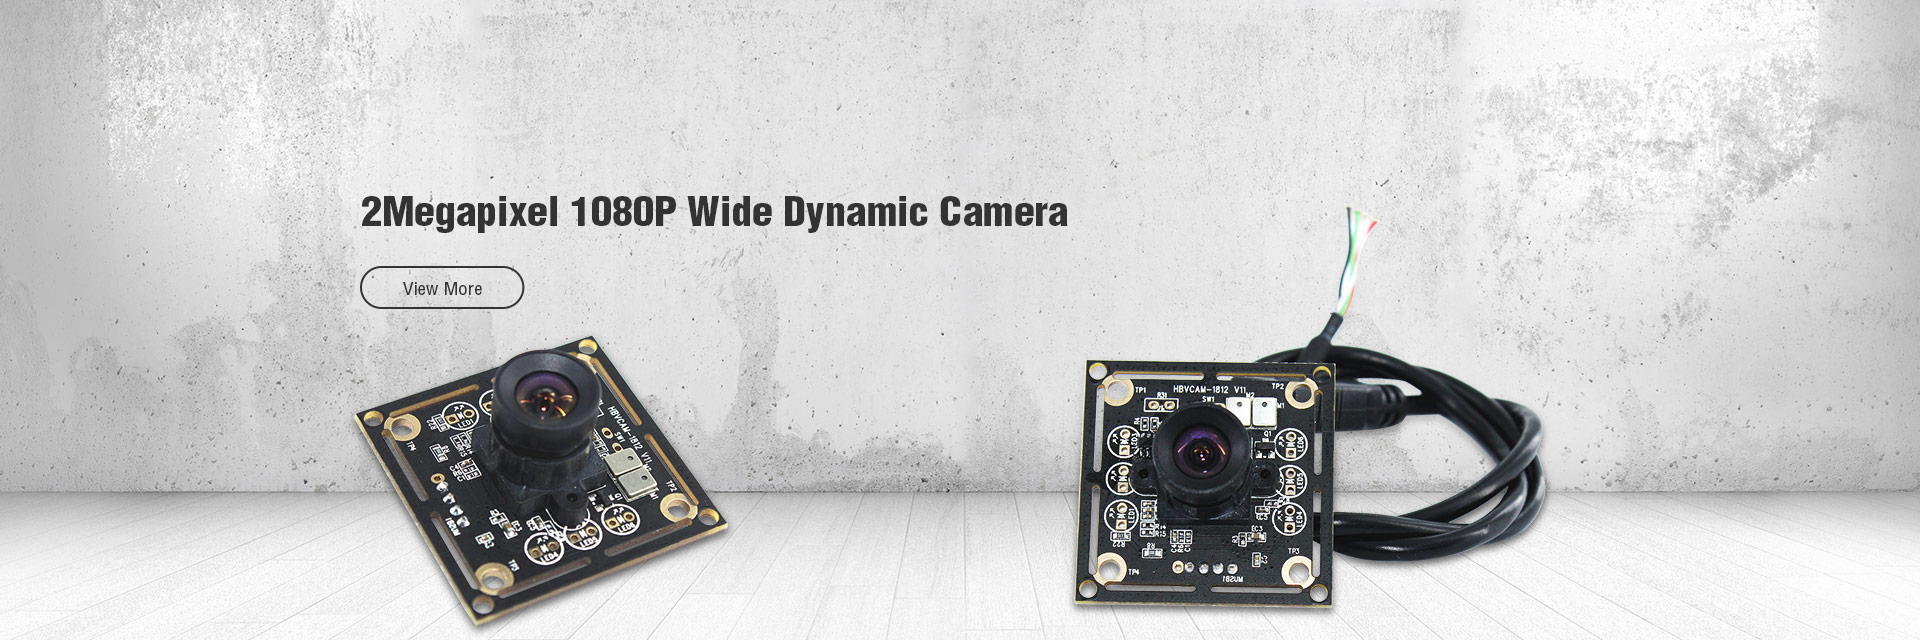 2Megapixel 1080P Wide Dynamic Camera